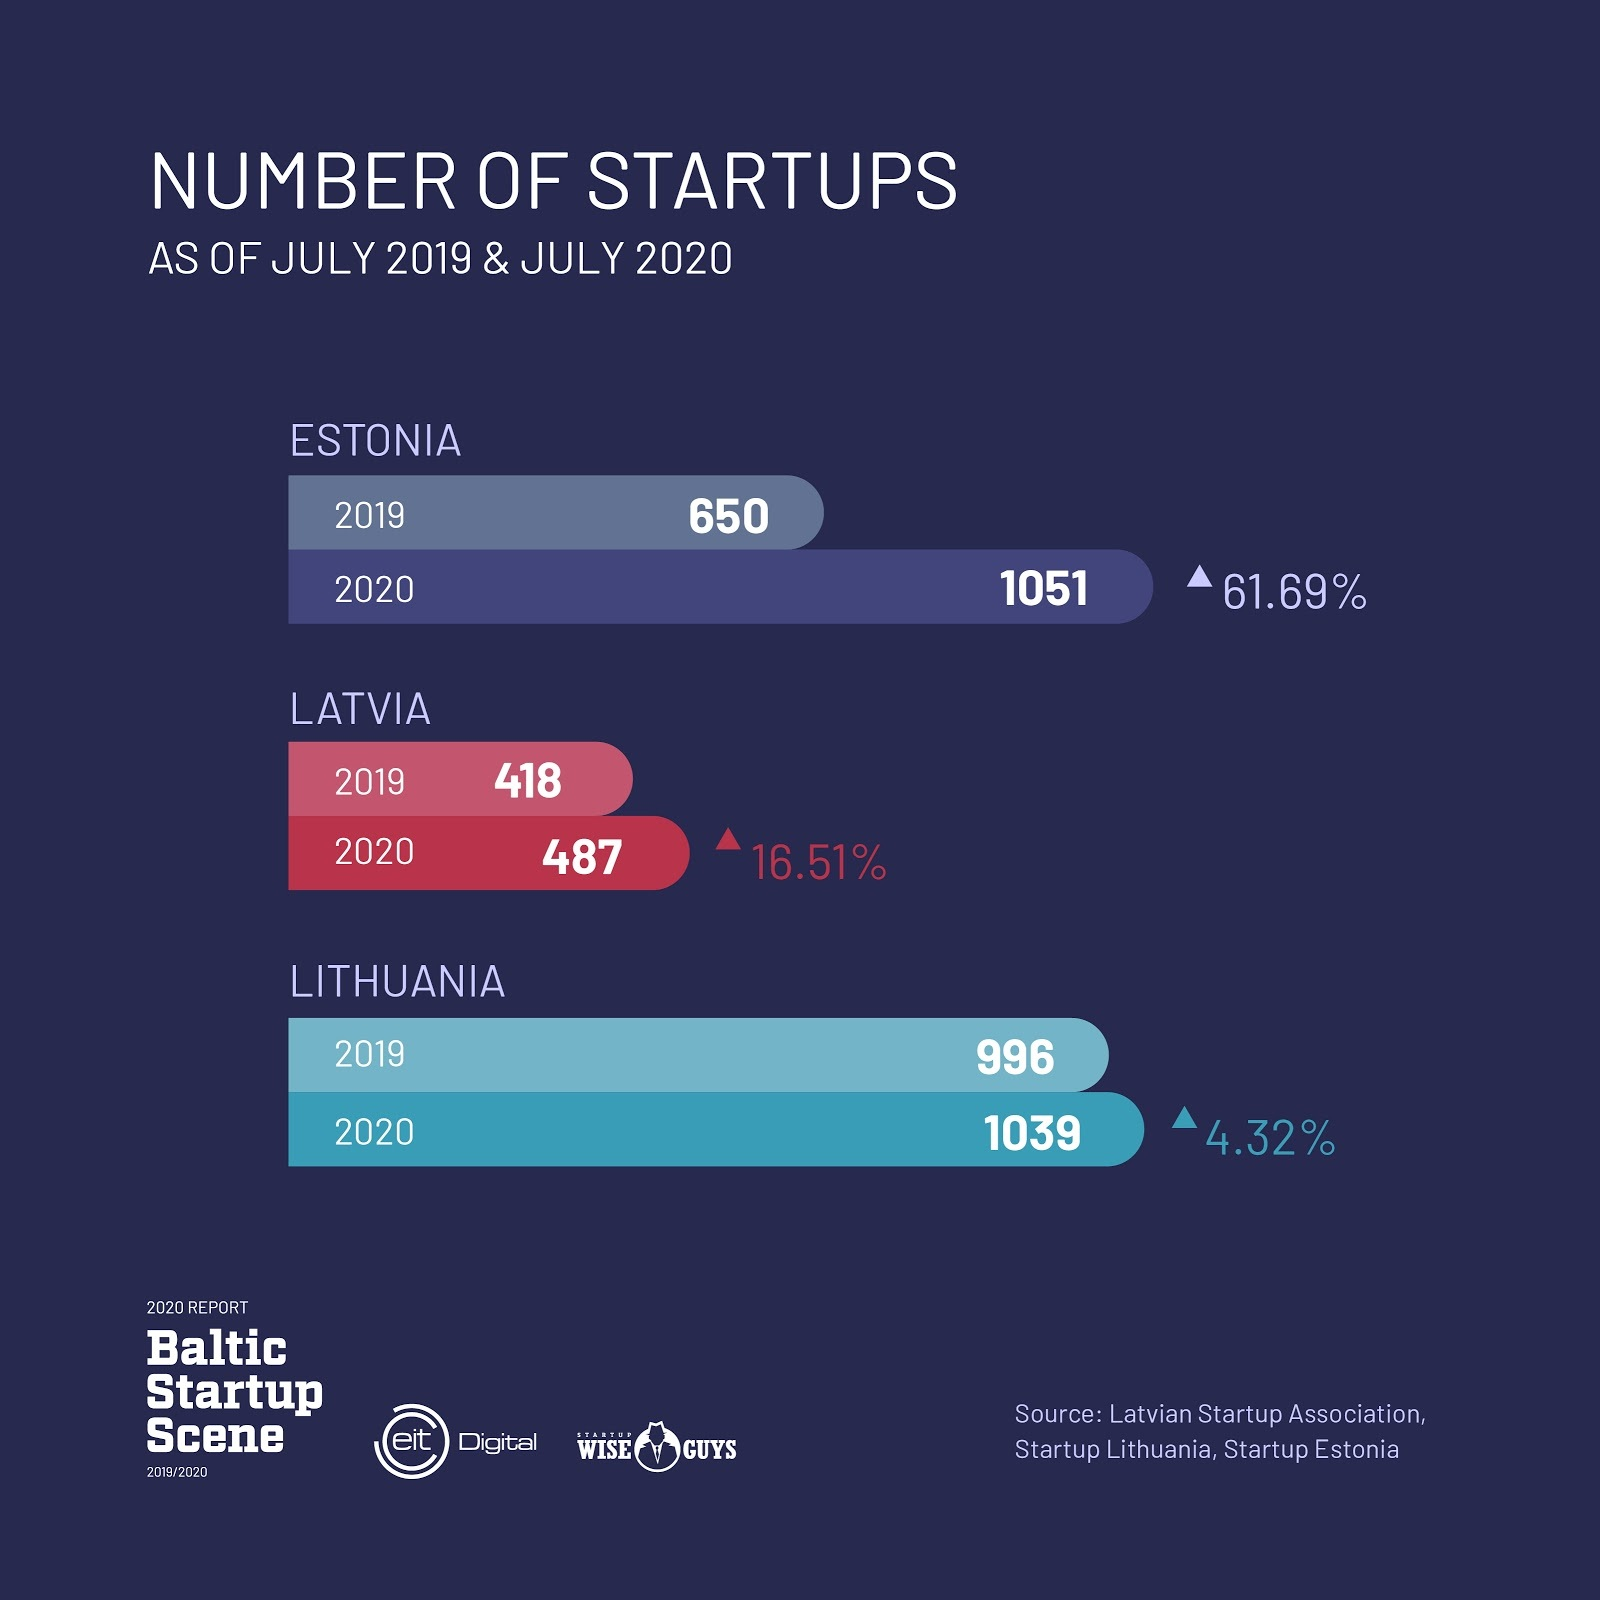 Baltic-Startup-Scene-report-2019-2020_Number-of-startups